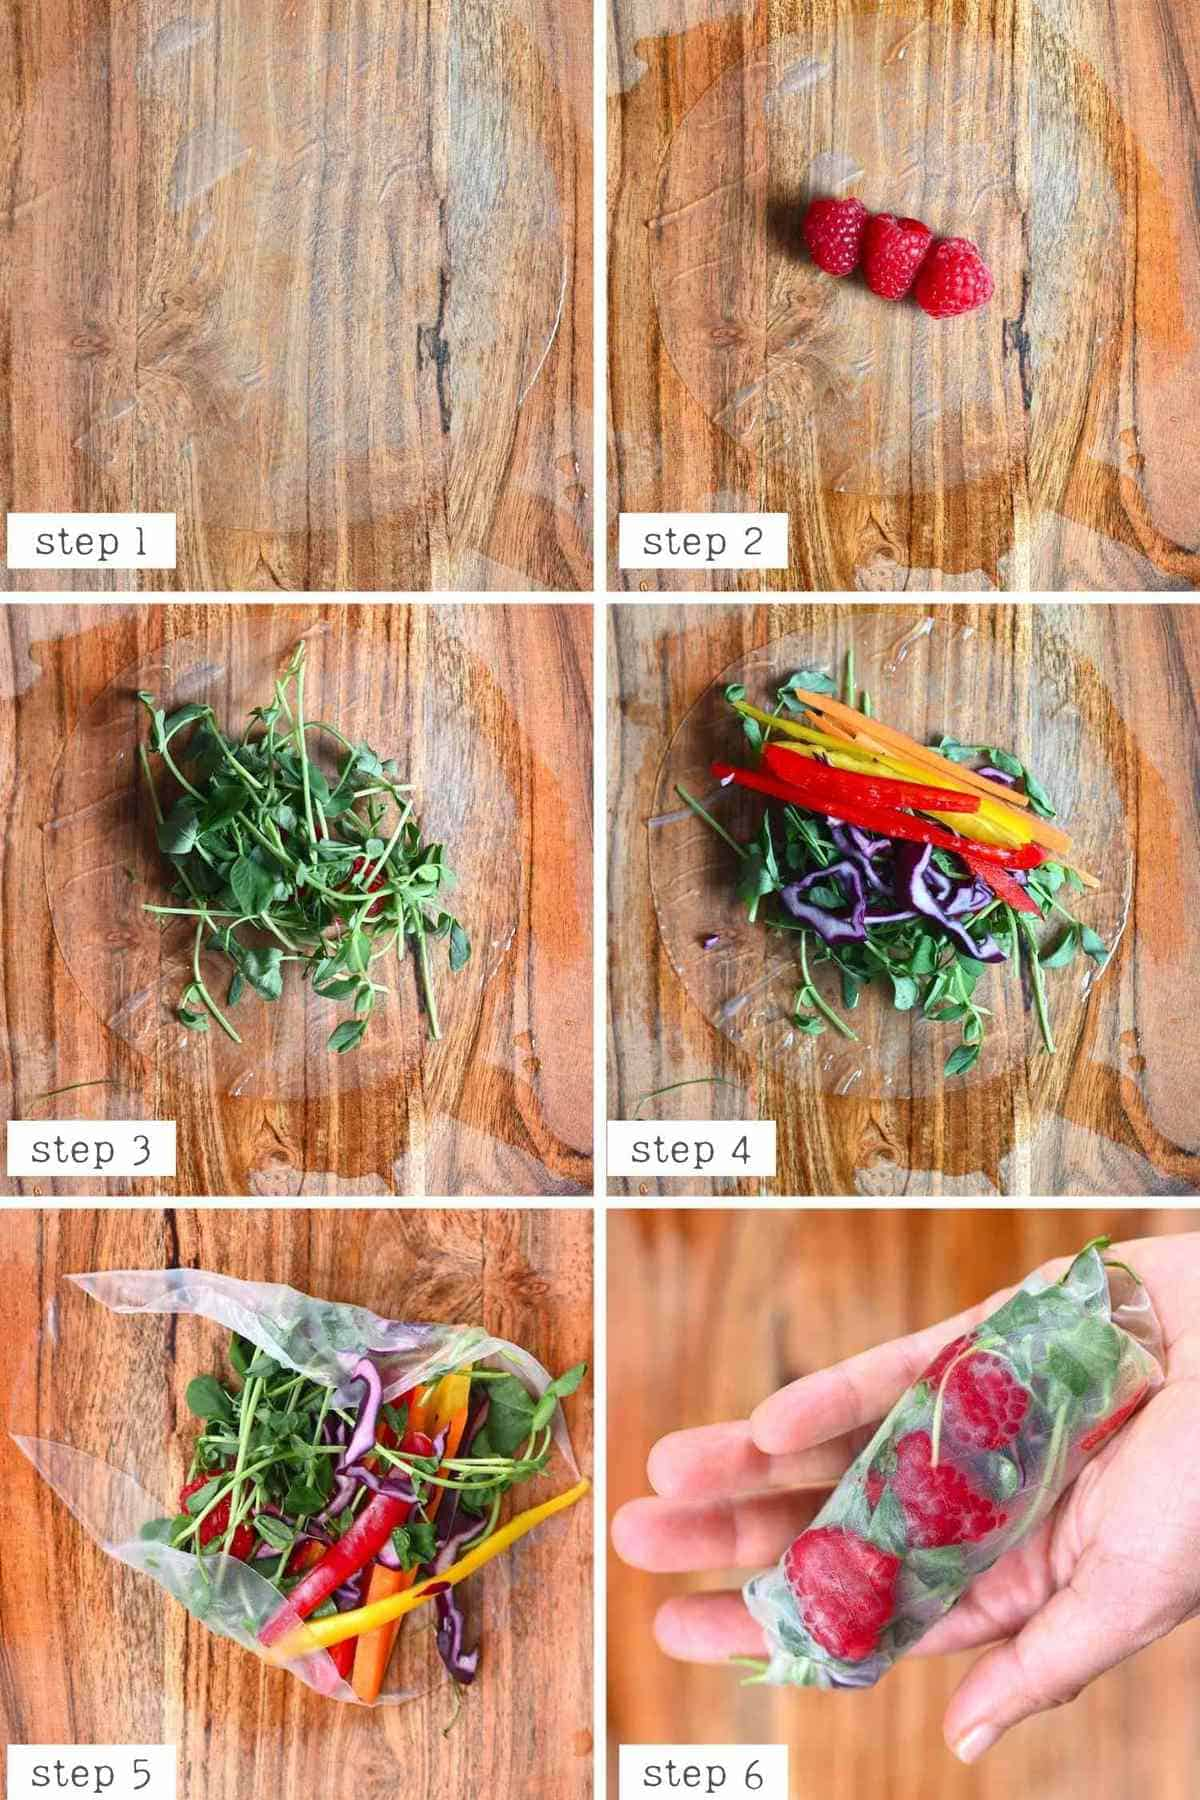 steps for making raspberry rice paper roll